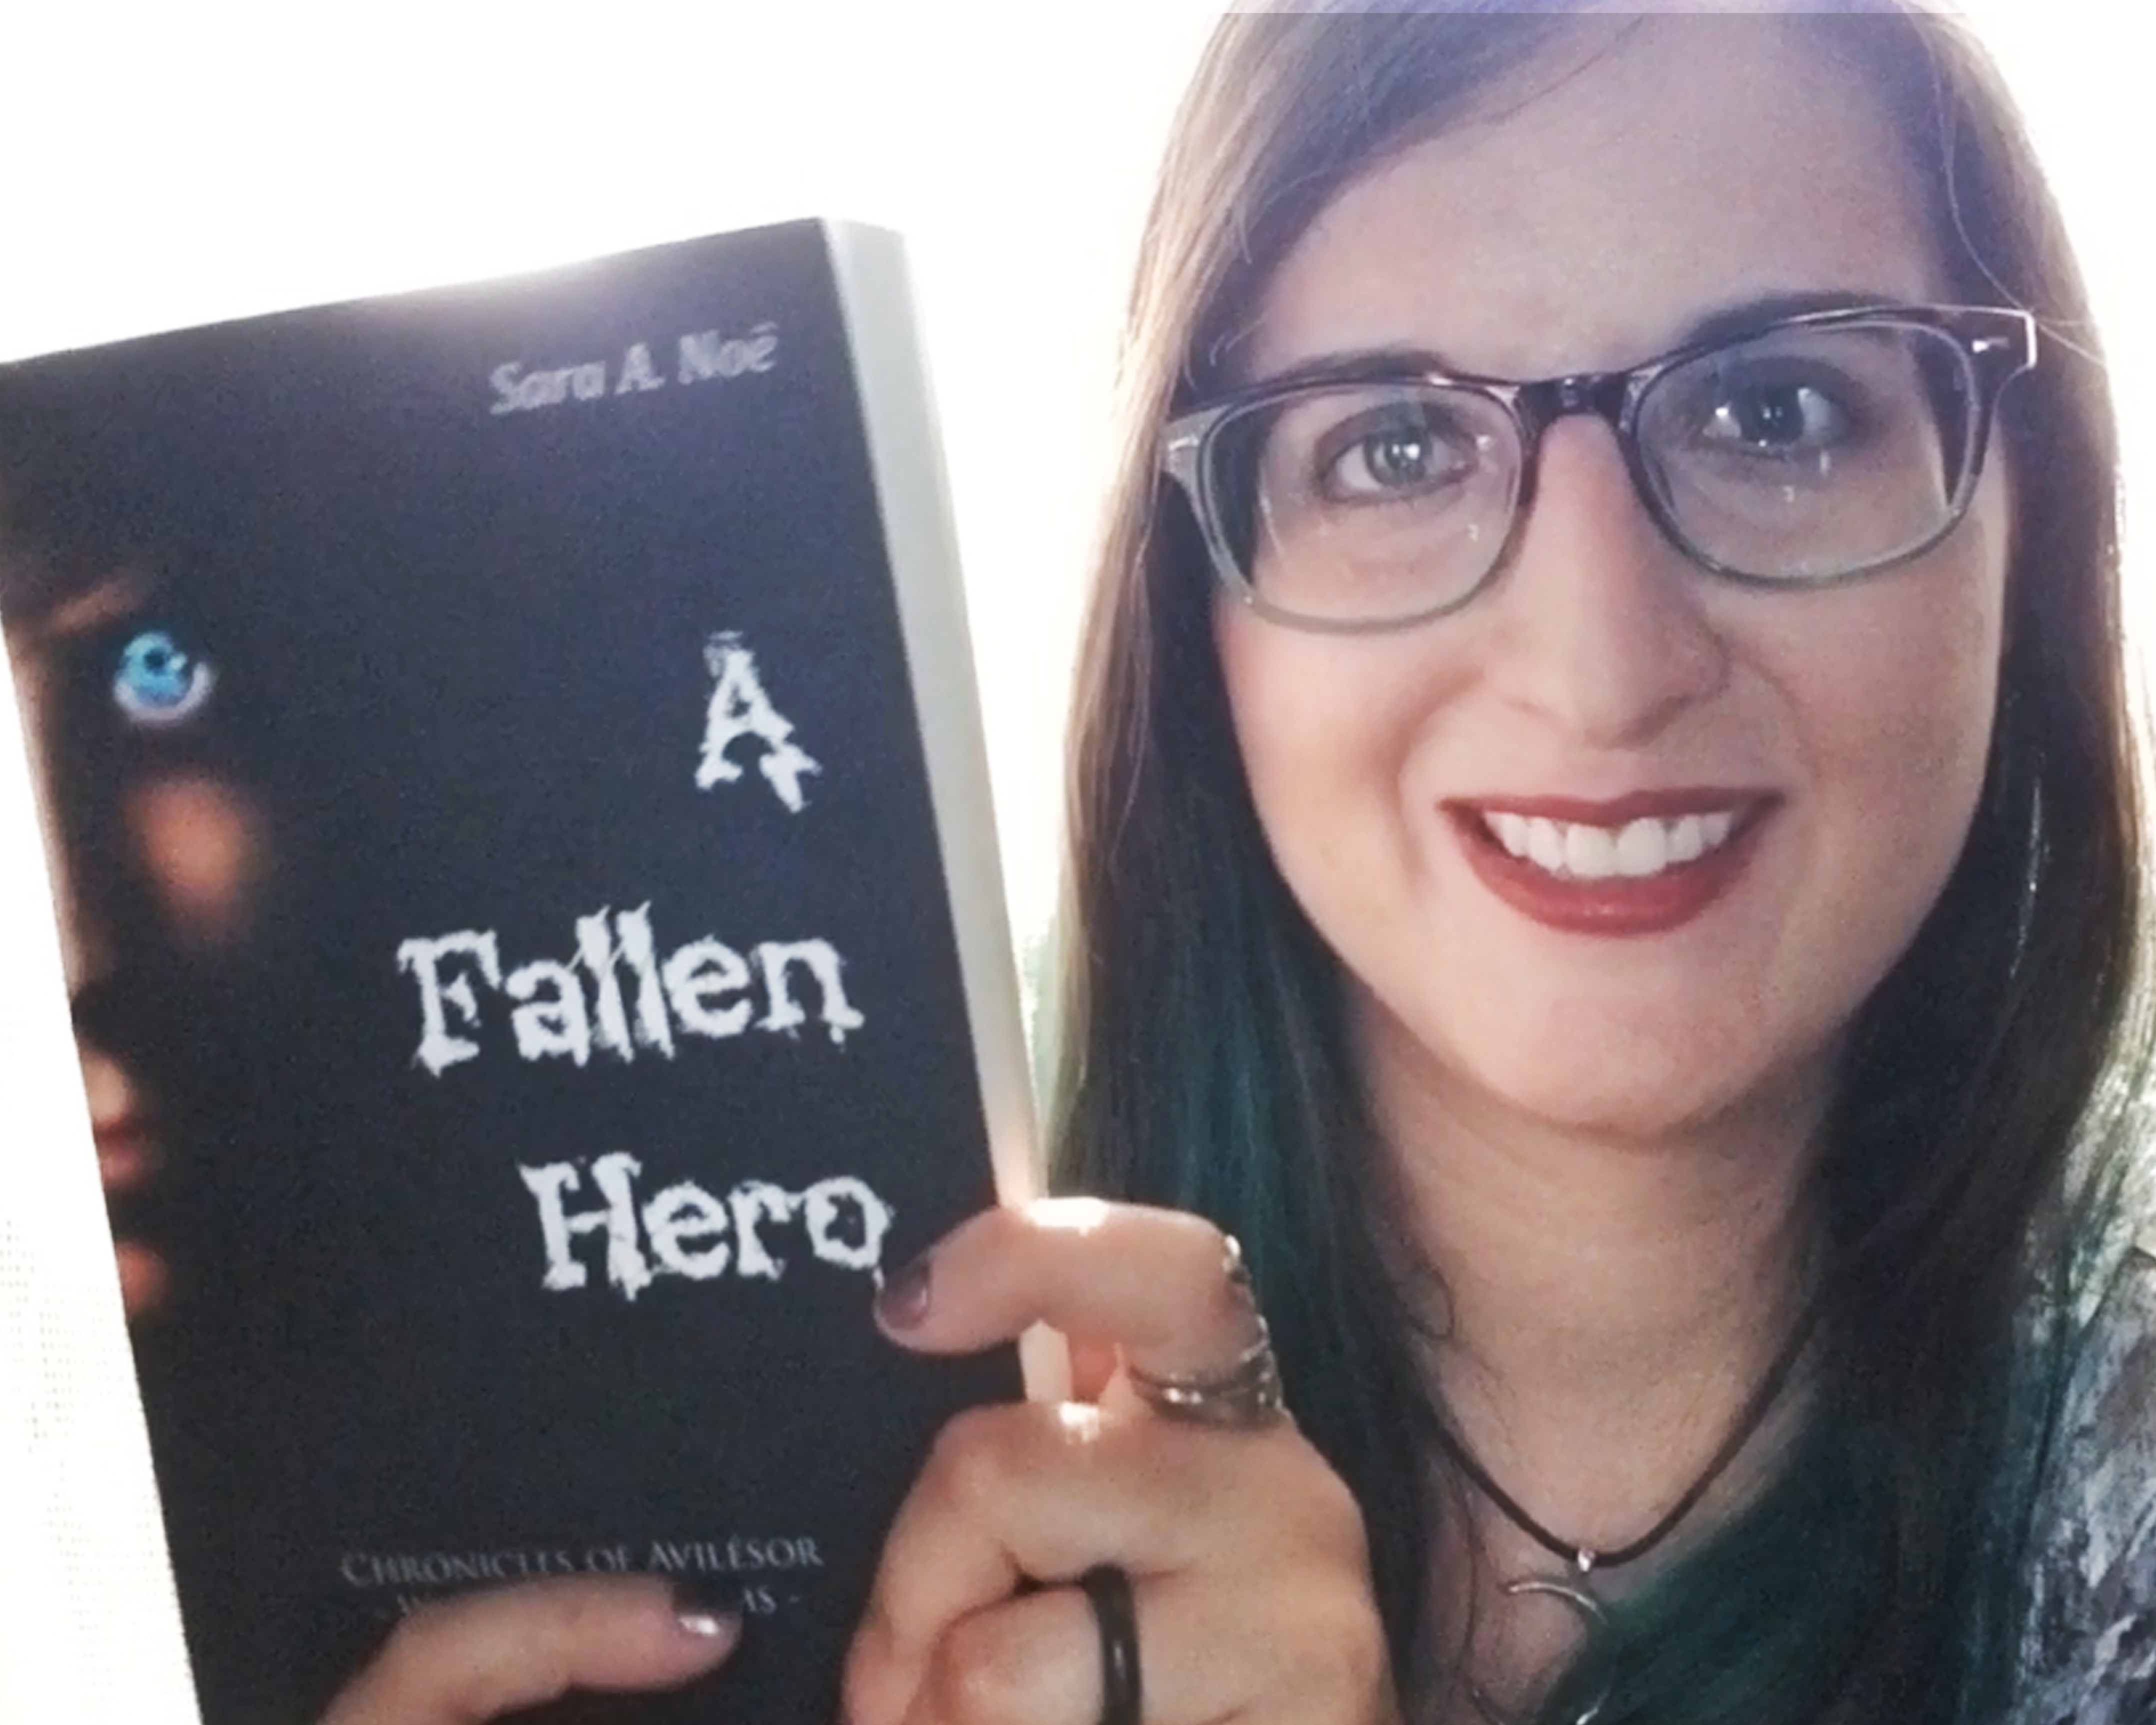 Author Sara A. Noë holding her first novel Chronicles of Avilésor: War of the Realm, A Fallen Hero